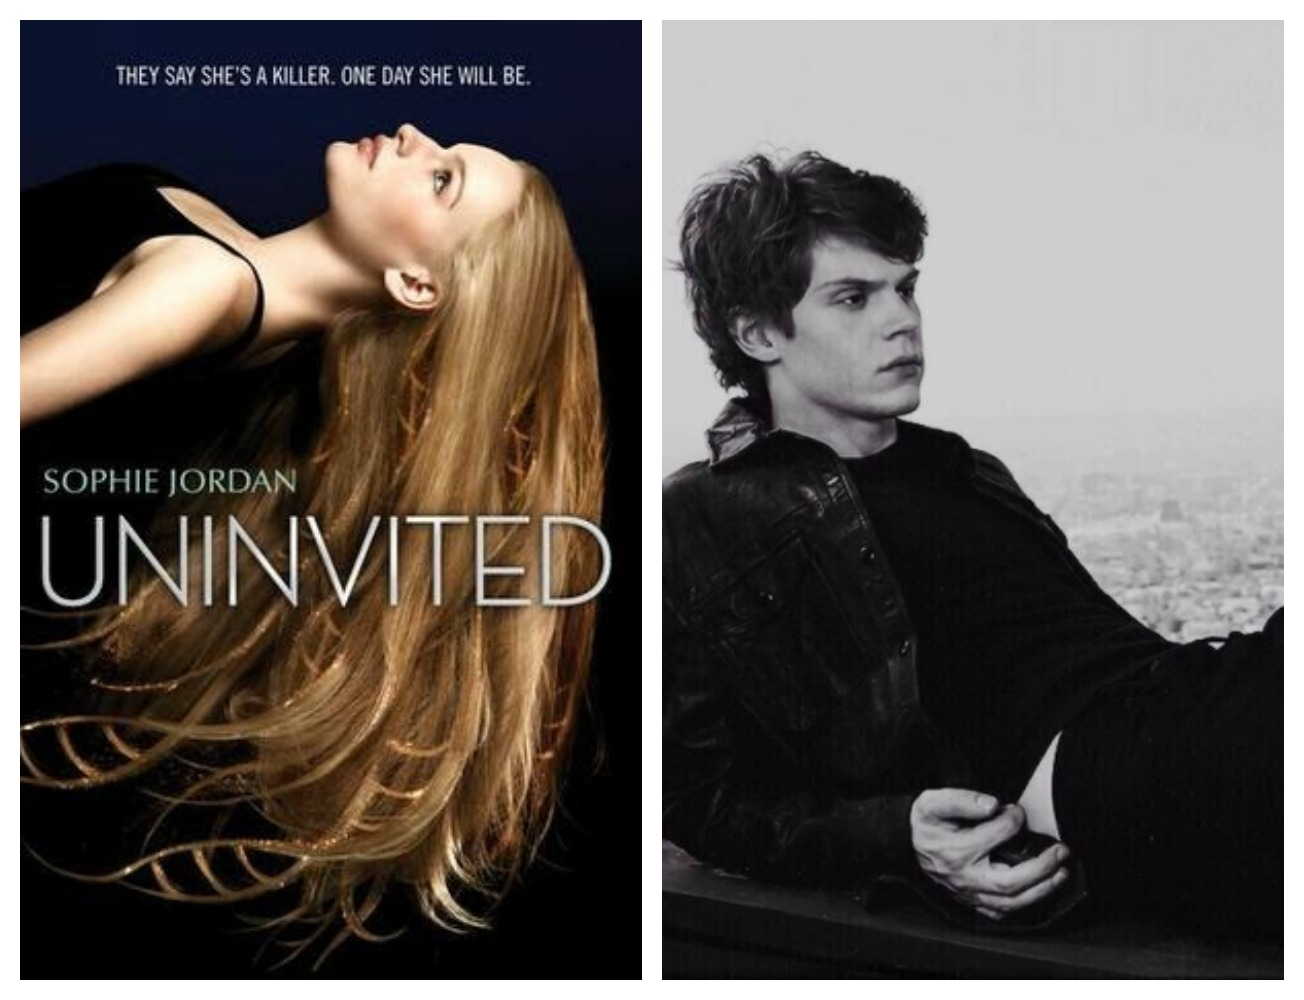 https://www.goodreads.com/book/show/13645645-uninvited?ac=1